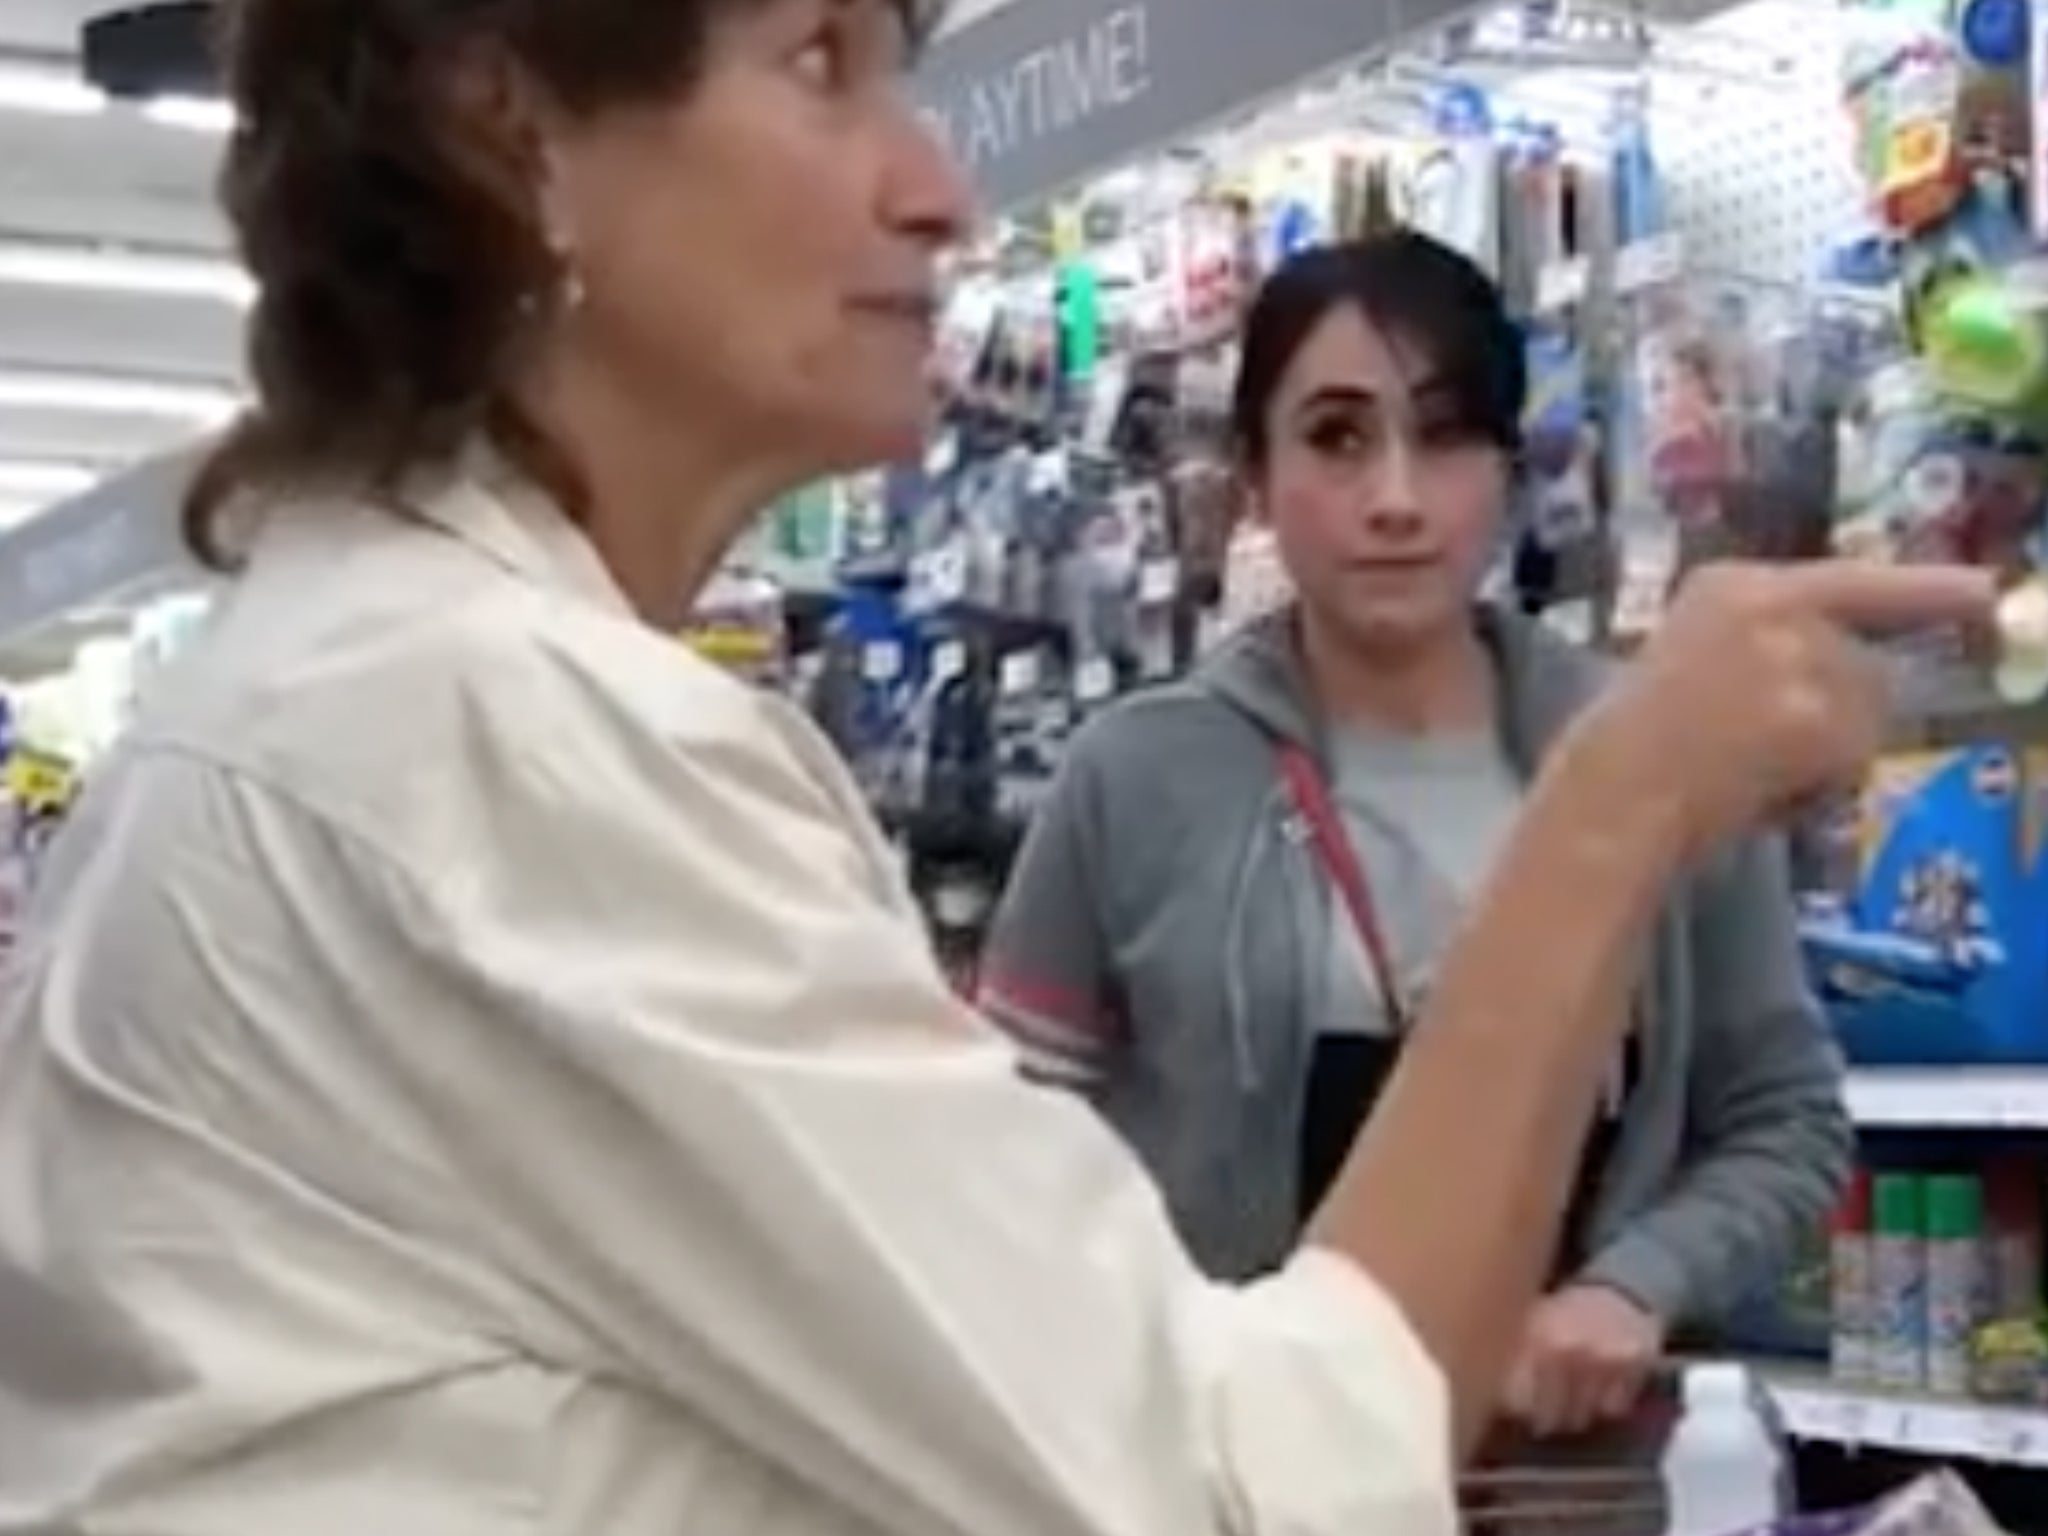 Woman filmed confronting another woman harassing Spanish